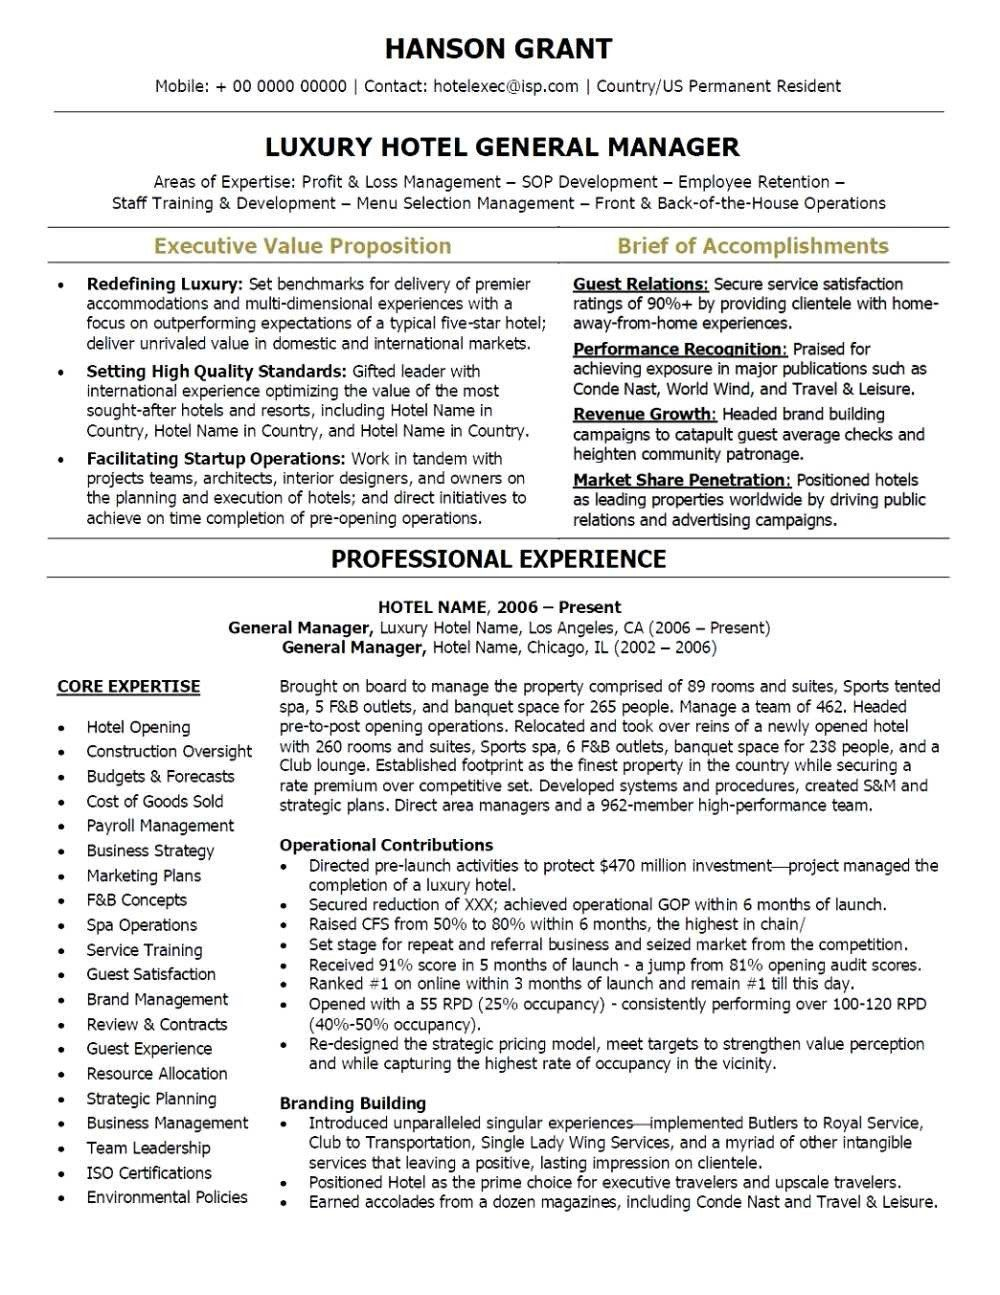 resume writing service chicago fresh writer new flamingo services professional writers Resume Resume Services Chicago